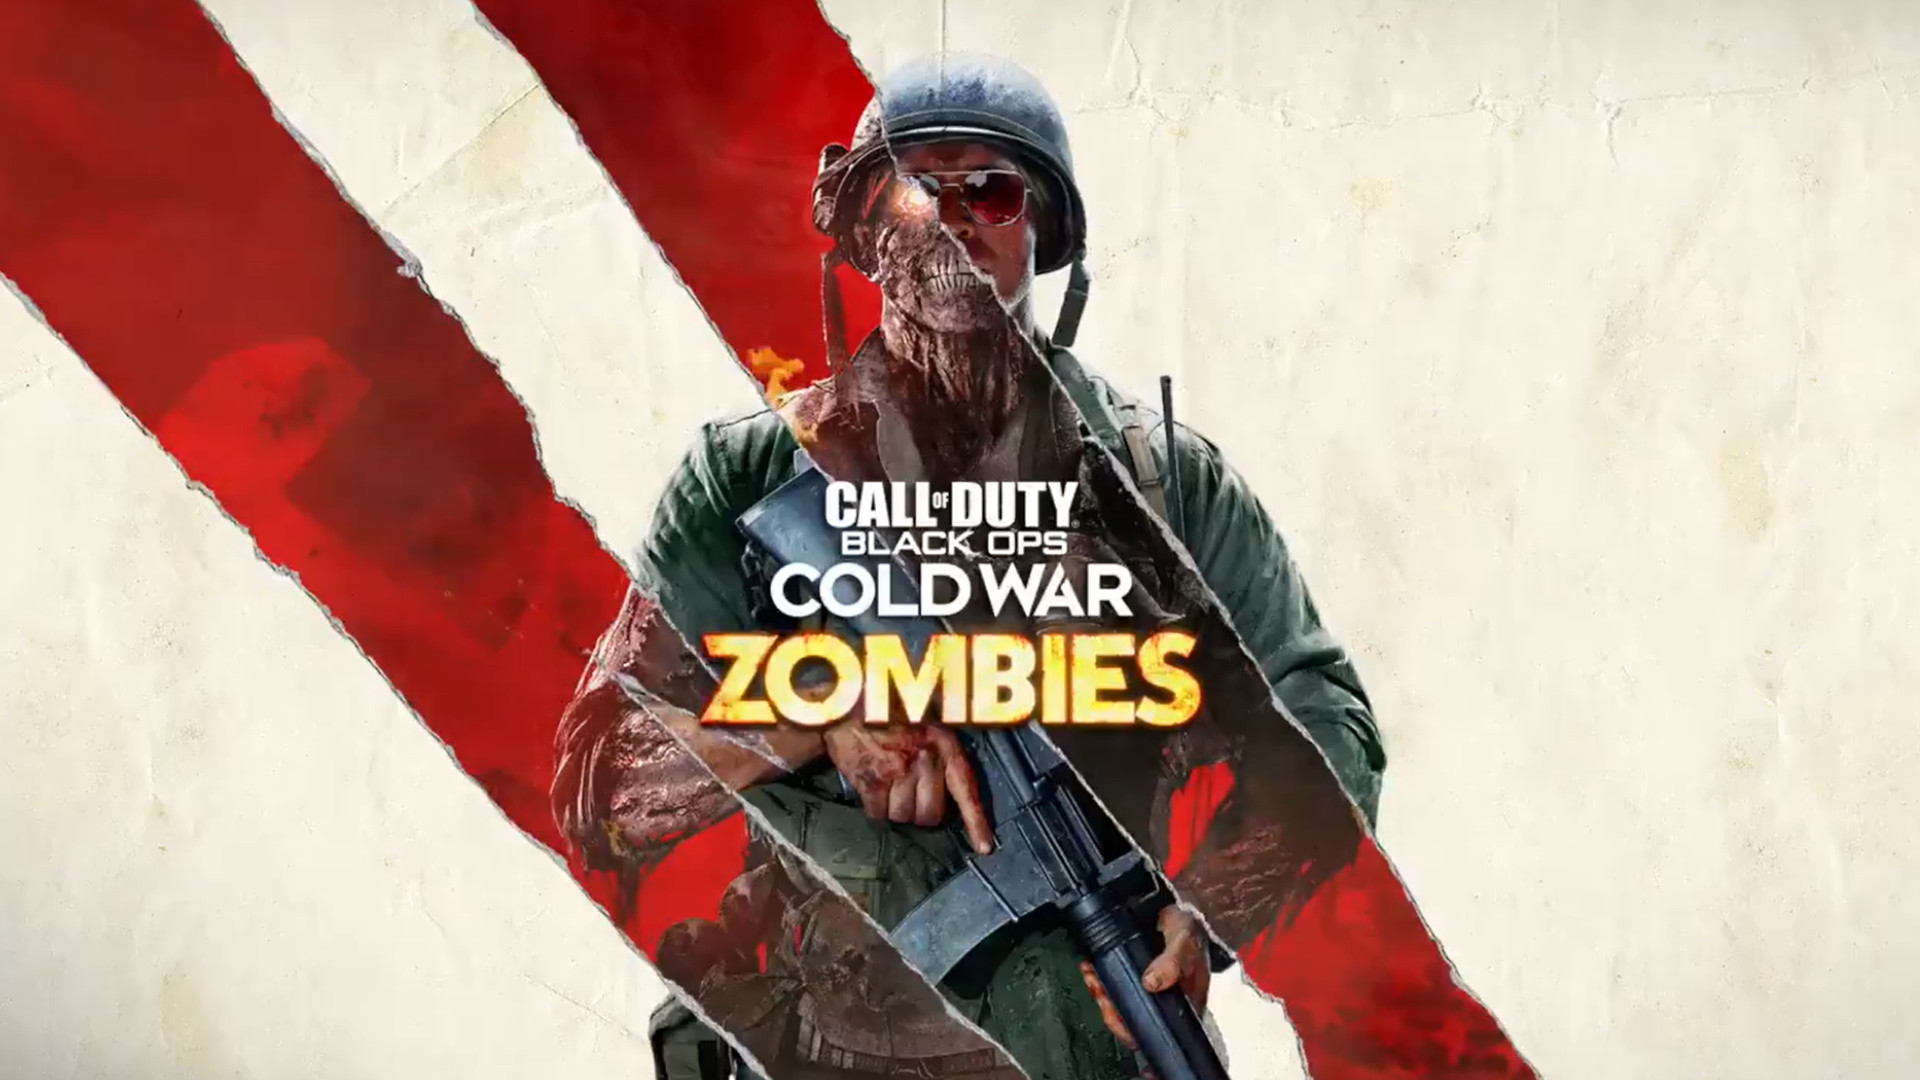 Black Ops Cold War On Ps5 And Ps4 Will Have A Timed Exclusive Two Player Co Op Zombie Mode Gamesradar